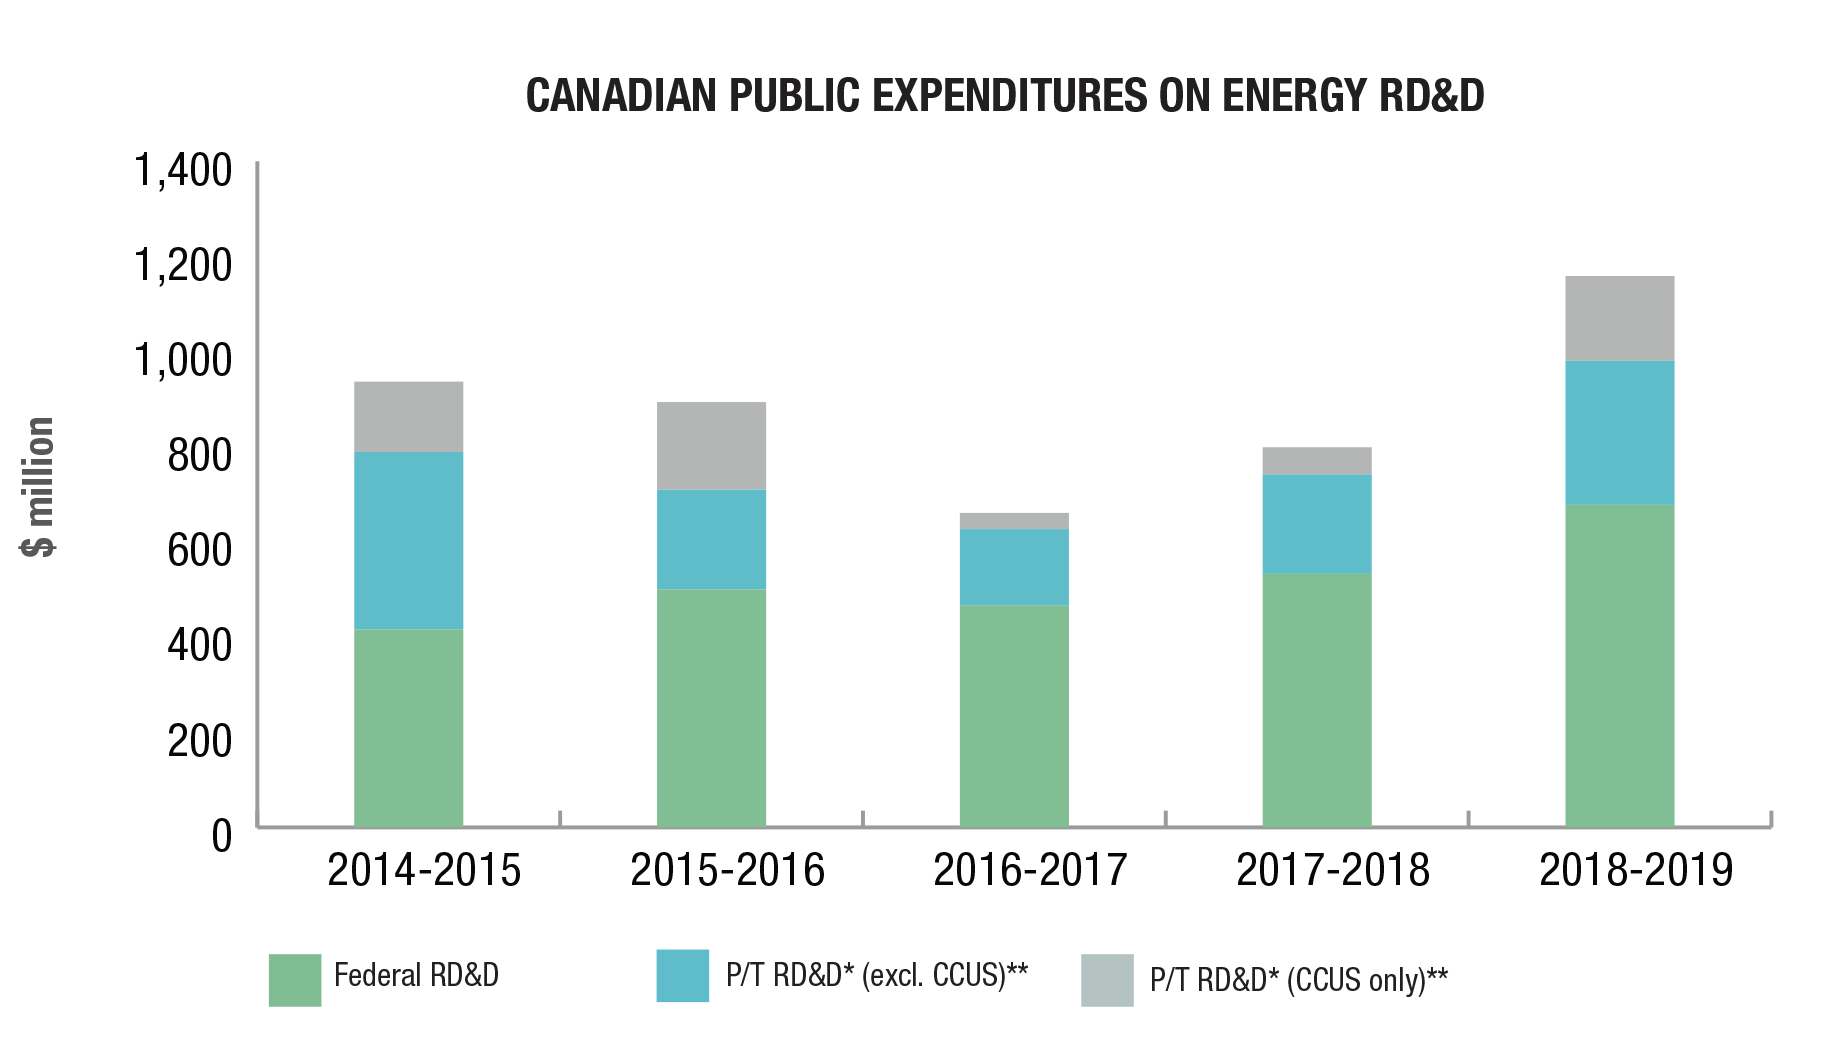 Canadian public expenditures on energy research